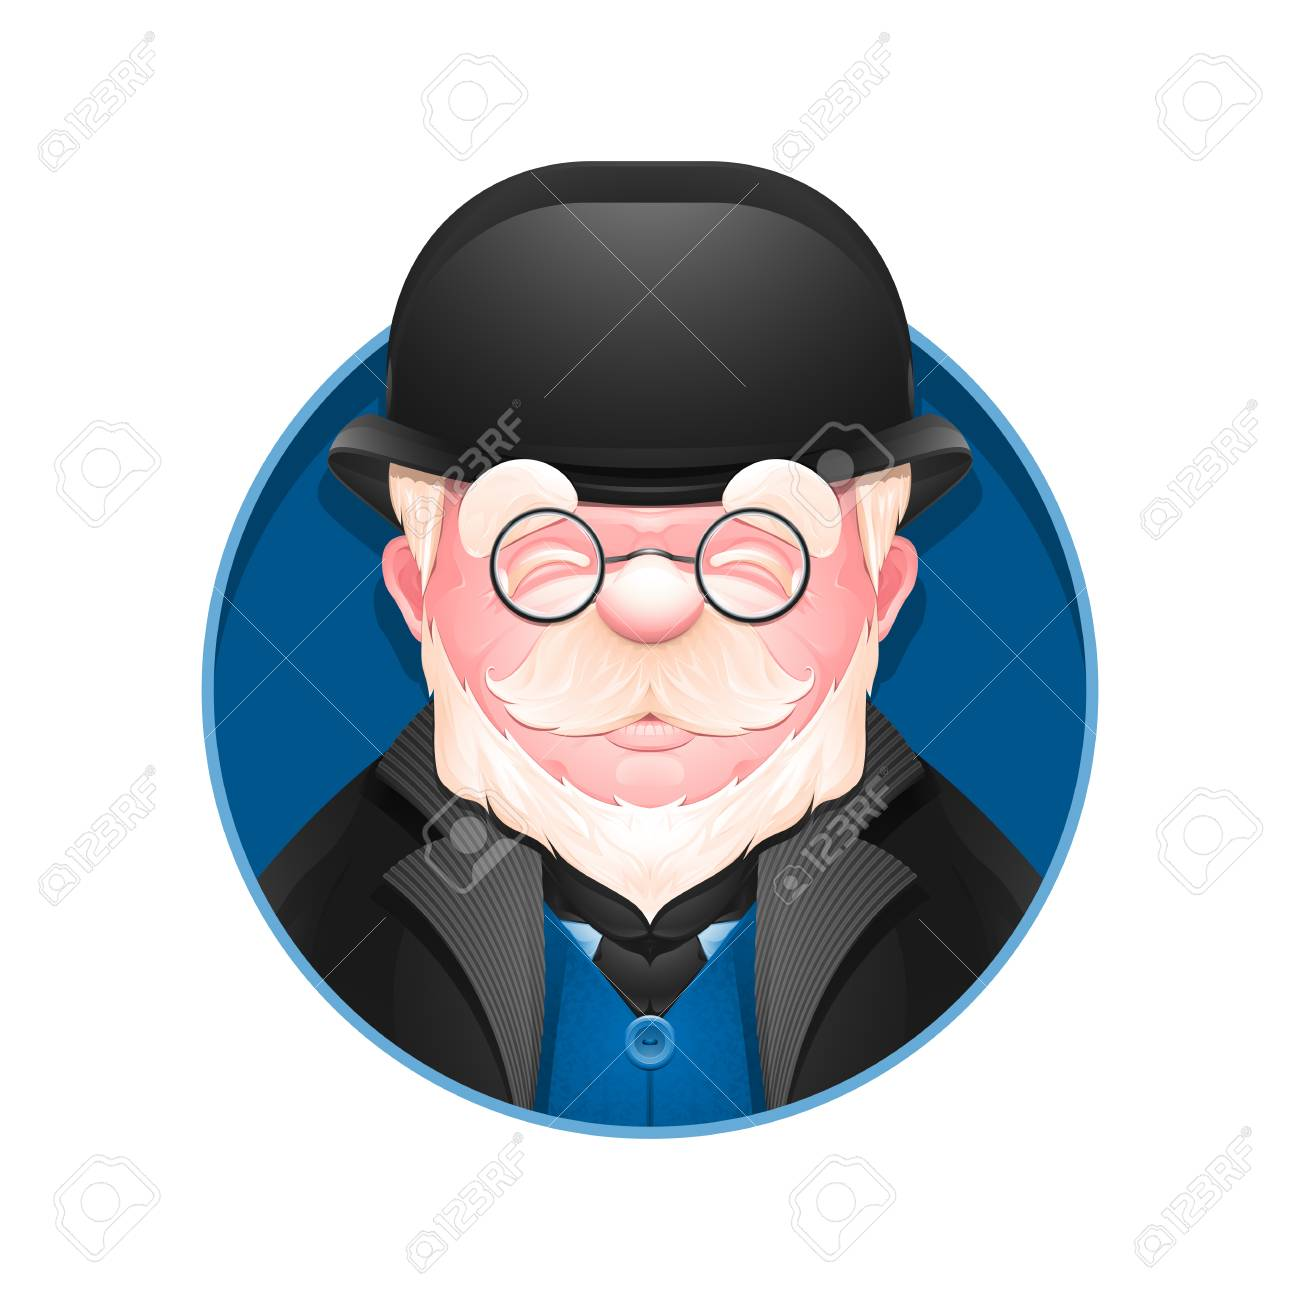 Avatar Icon Portrait Of An Adult Business Man In A Bowler Hat